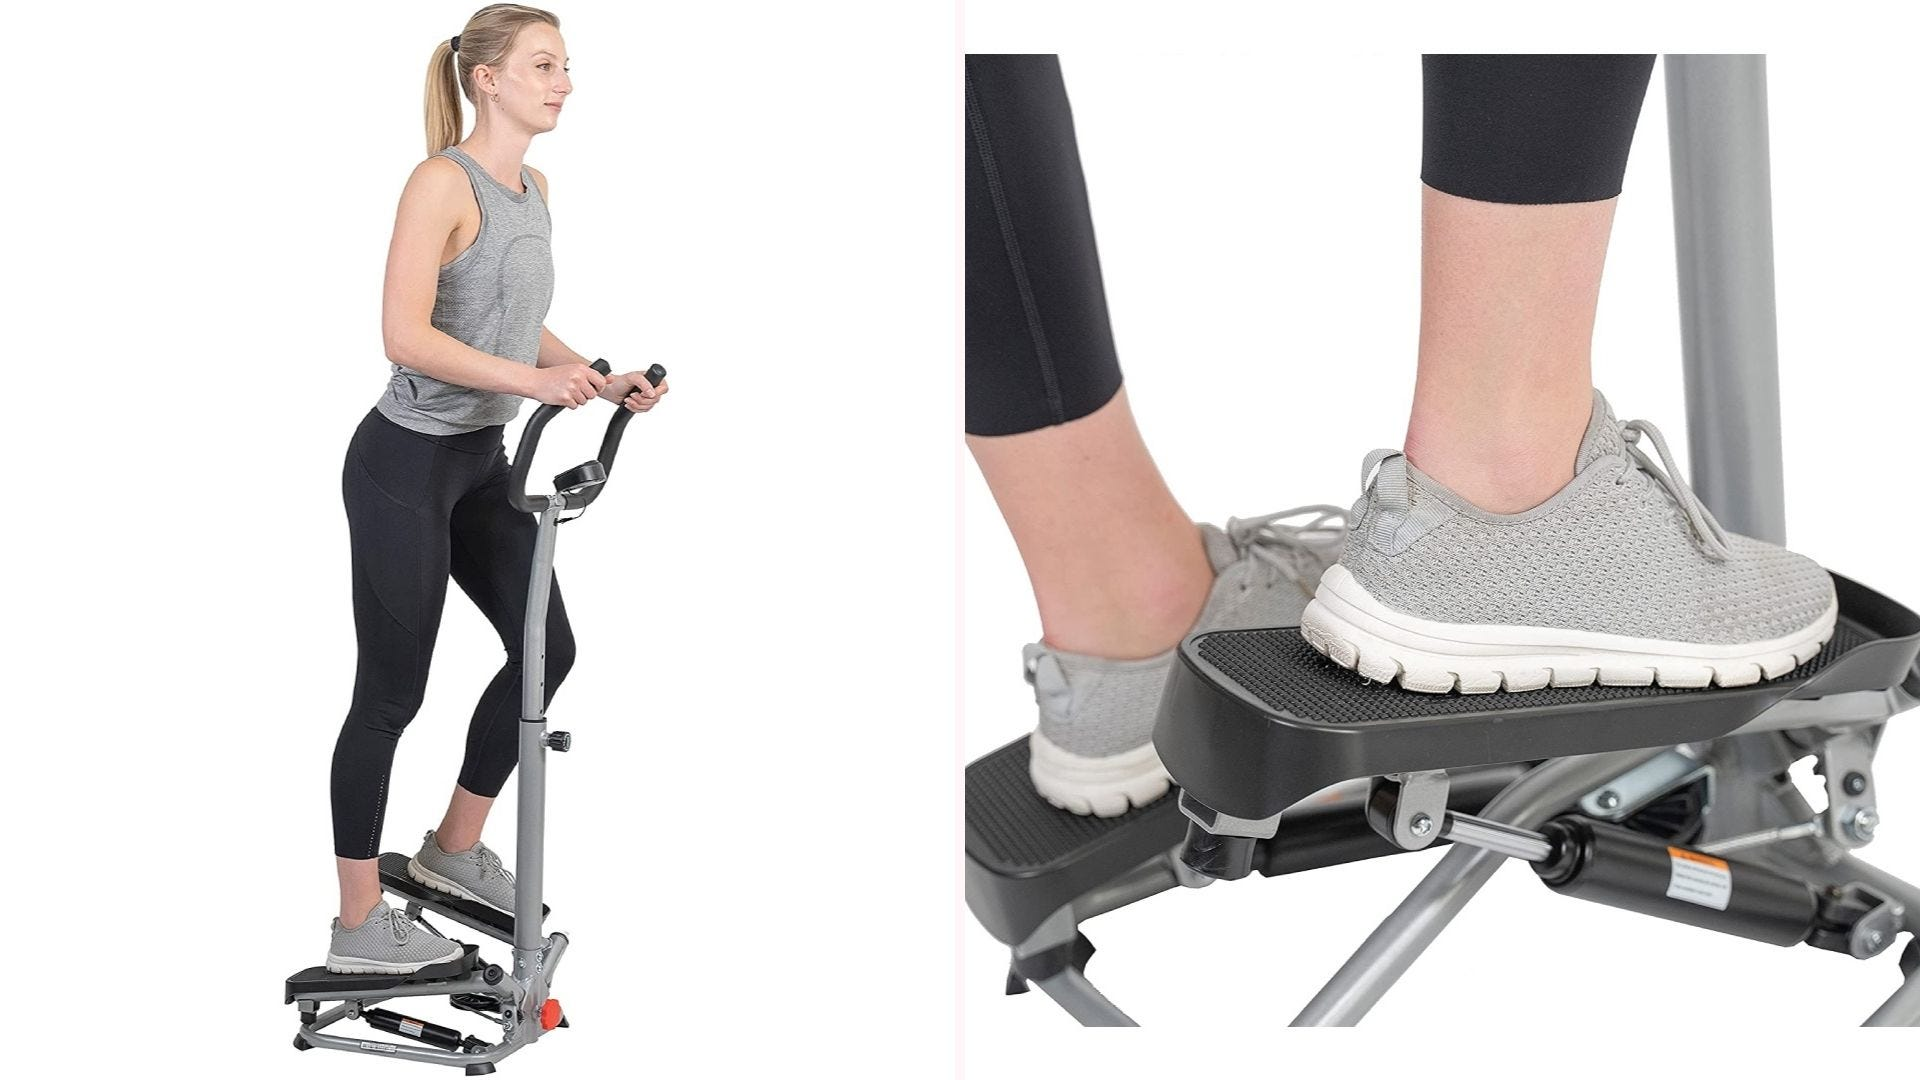 On the left, a woman stands on a stair stepper with handles.